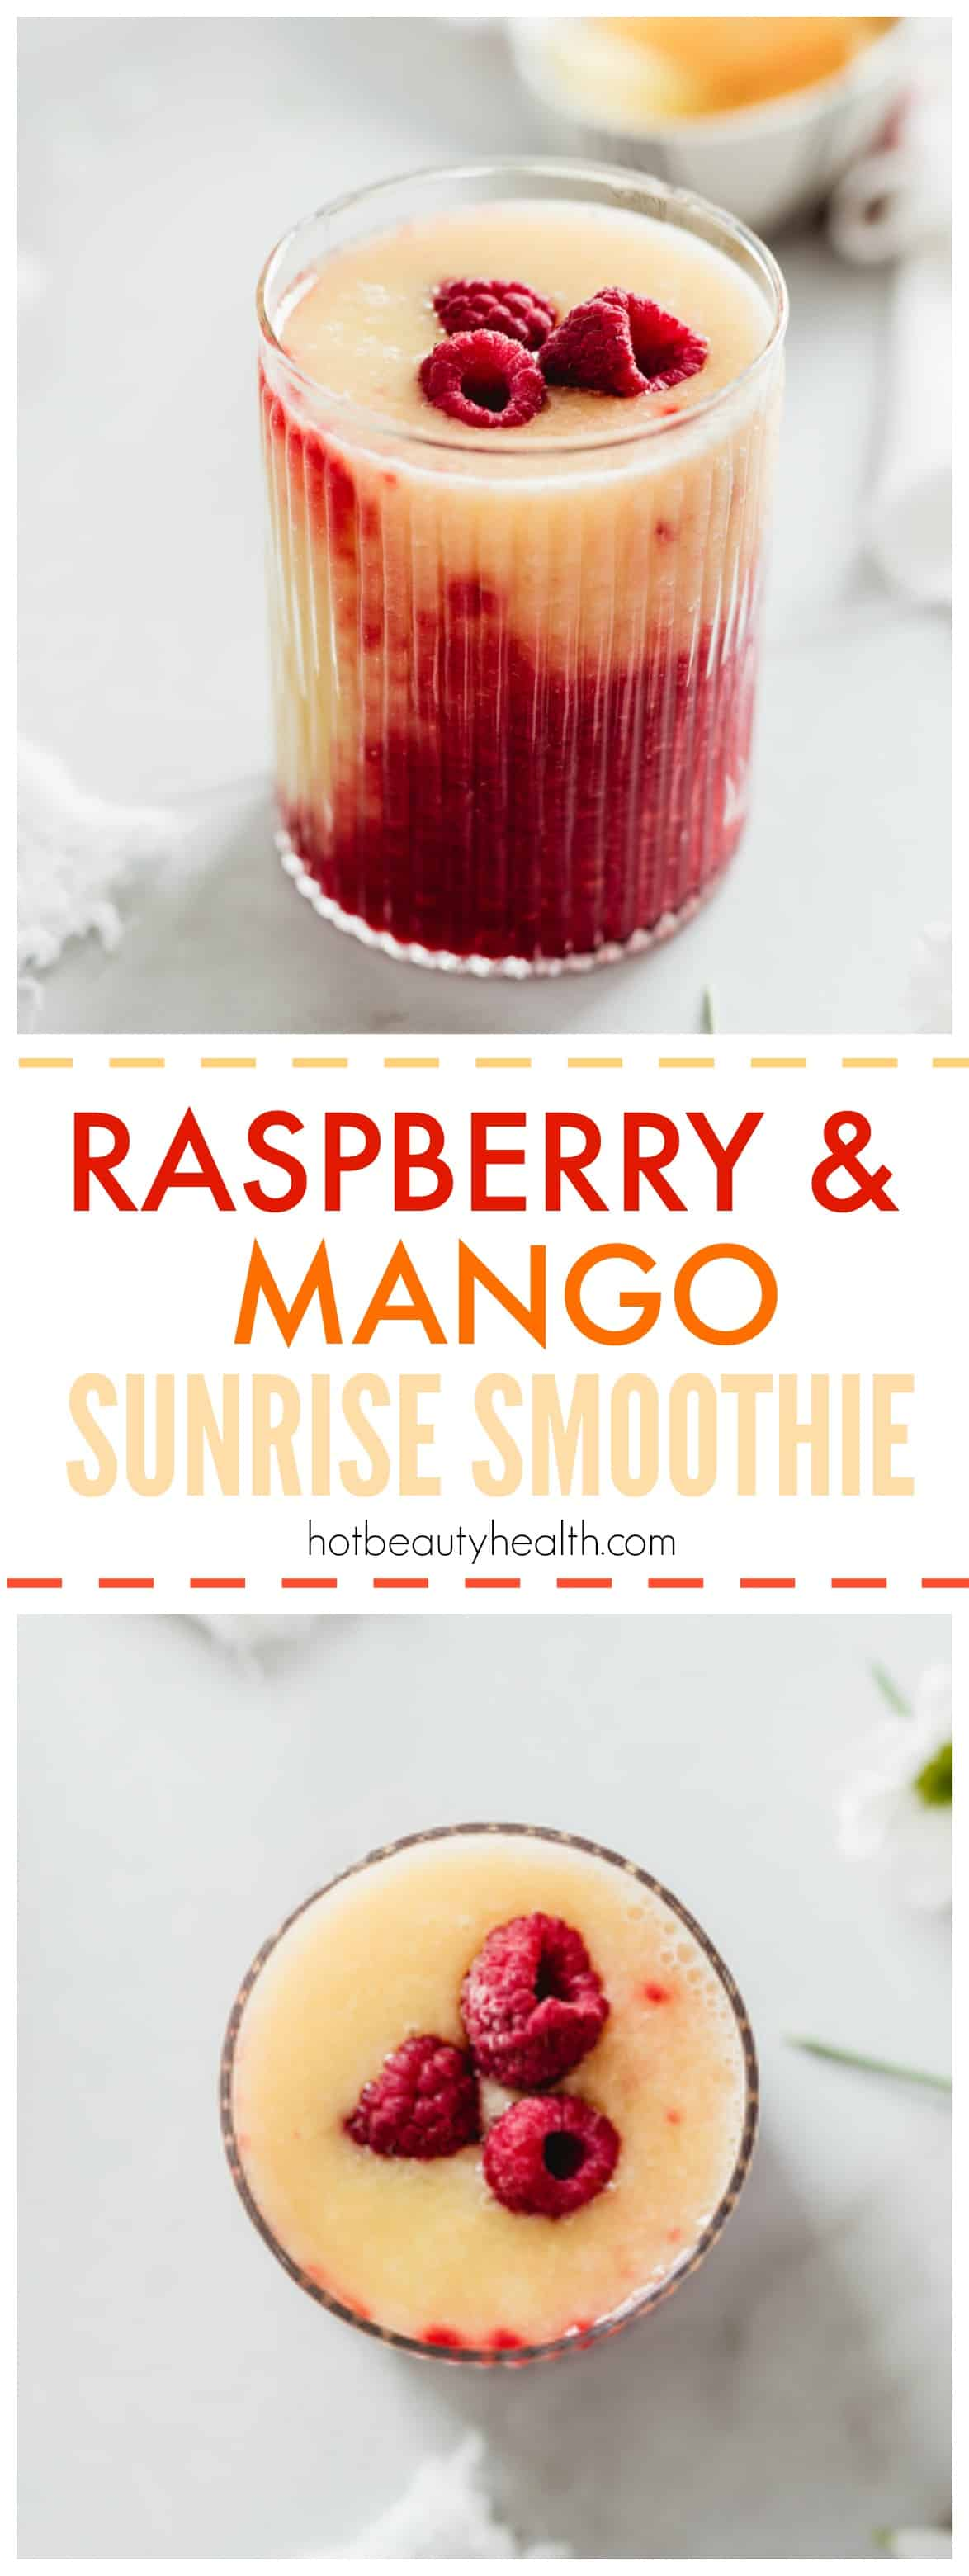 Raspberry Mango Sunrise Smoothie